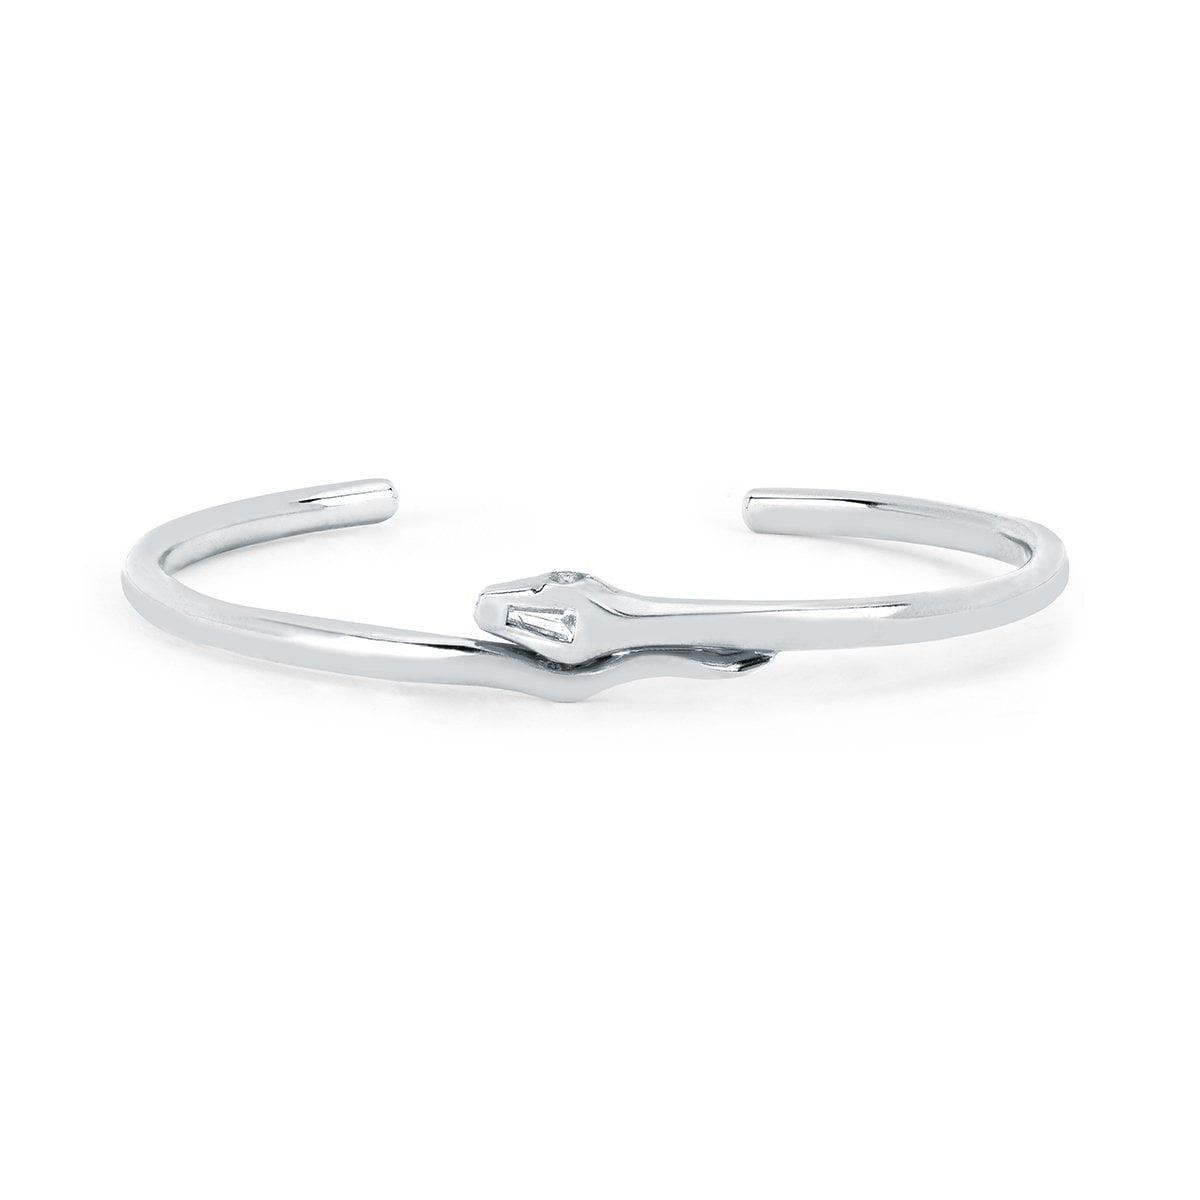 NEW! Solid Kundalini Cuff with Diamond Detail